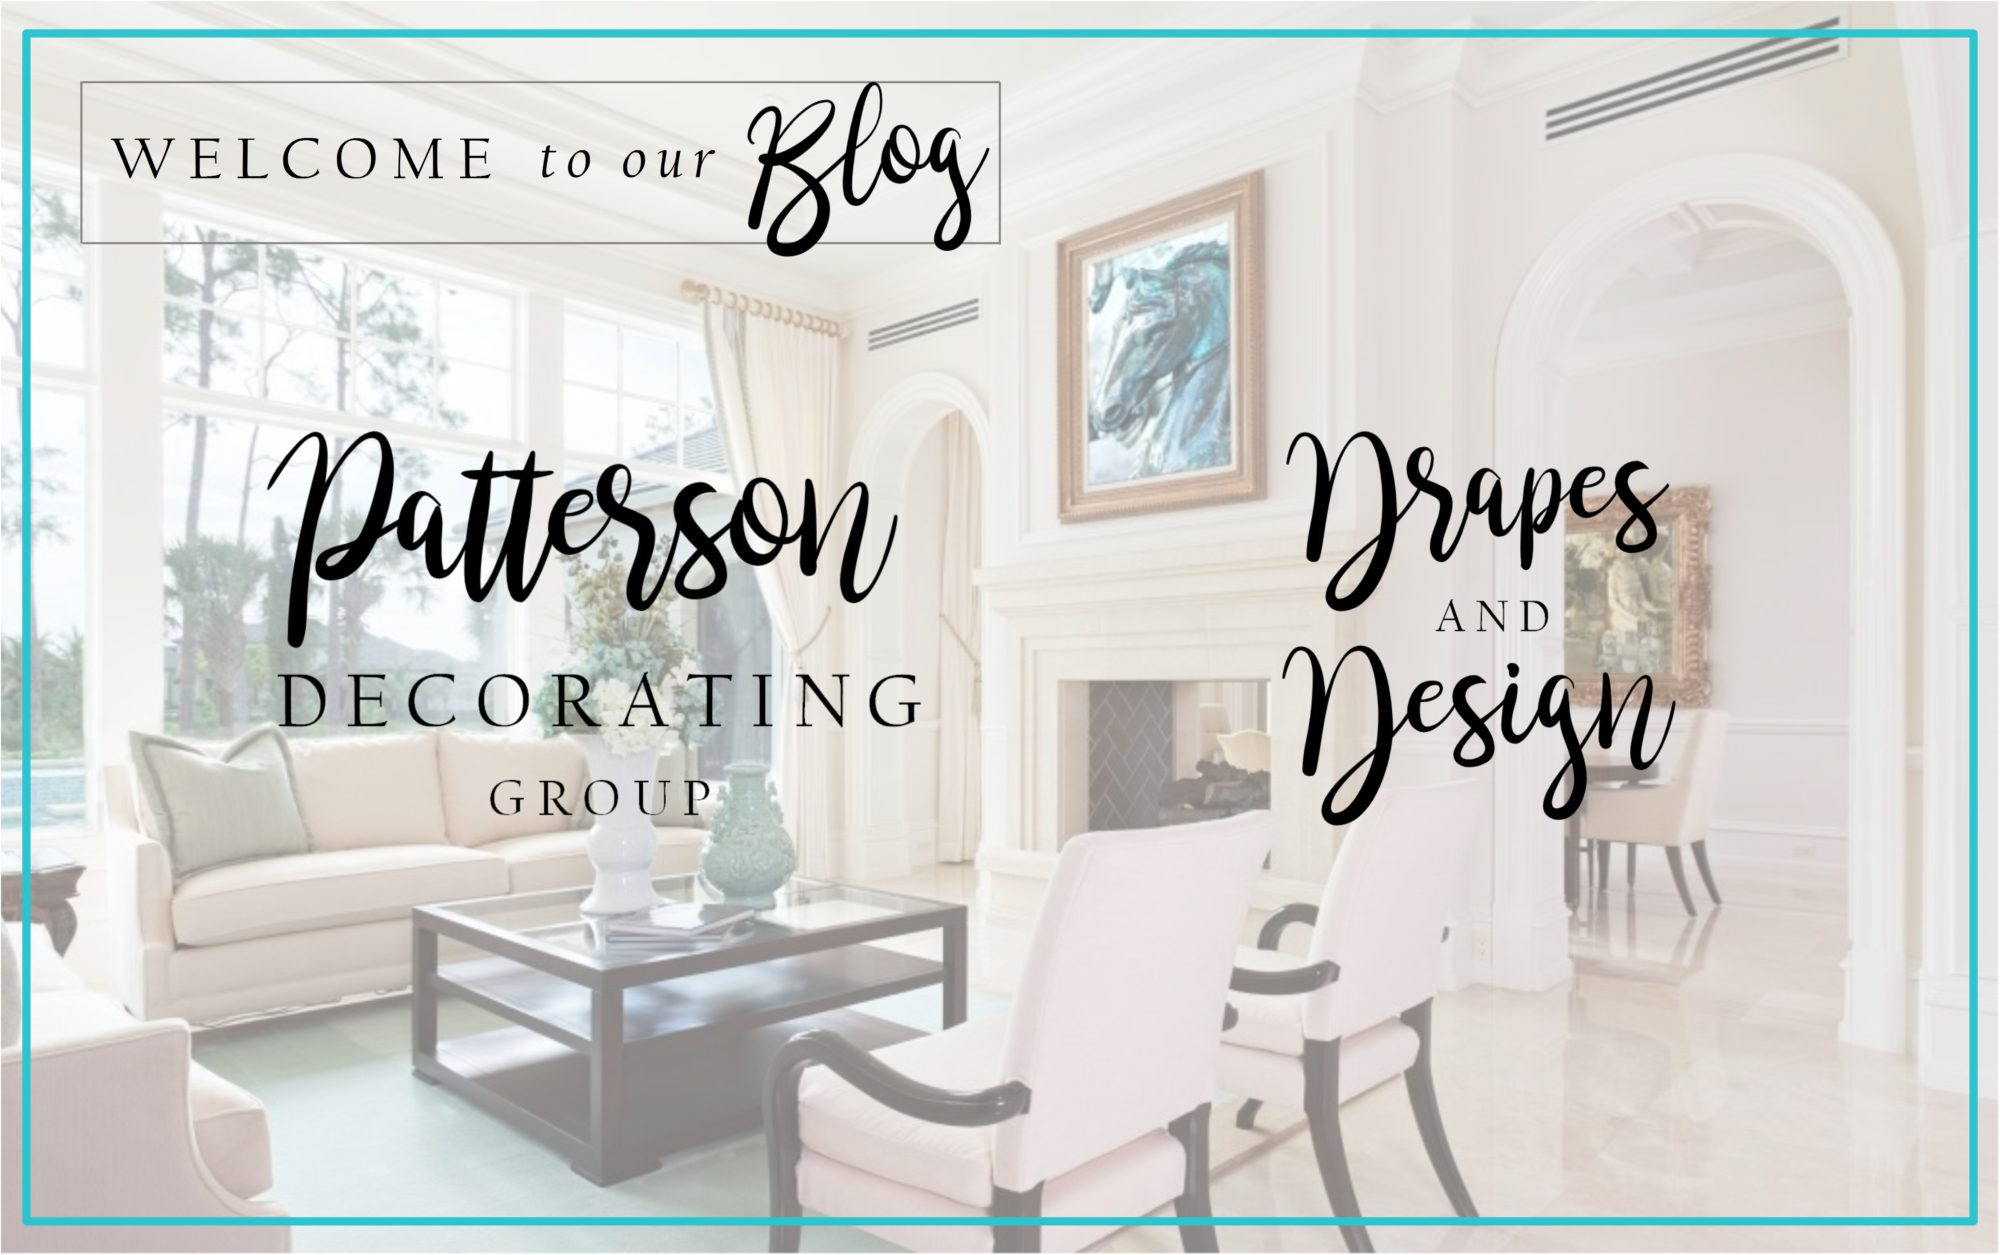 Patterson Decorating Group & Drapes and Design Blog